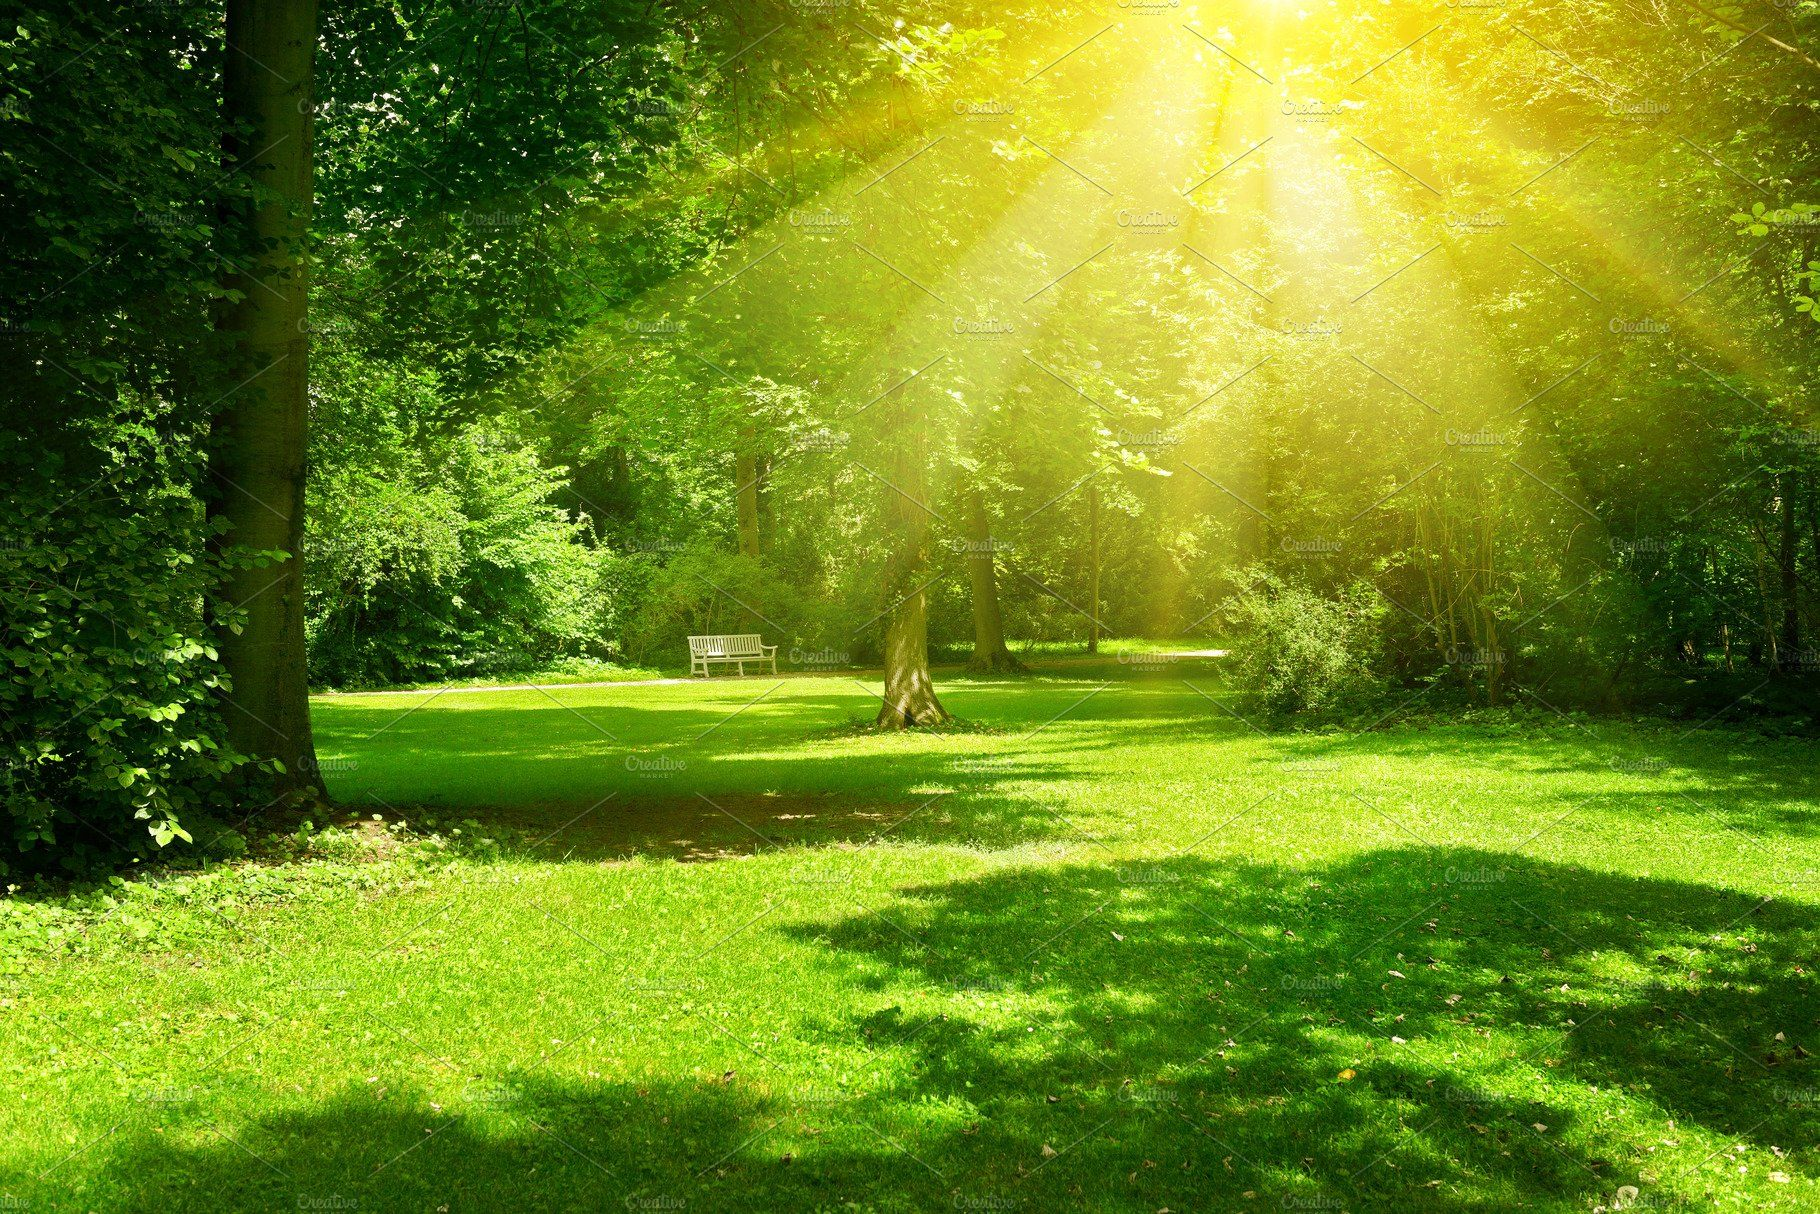 Bright Sunny Day In Park Anime Background Anime Backgrounds Wallpapers Scenery Background